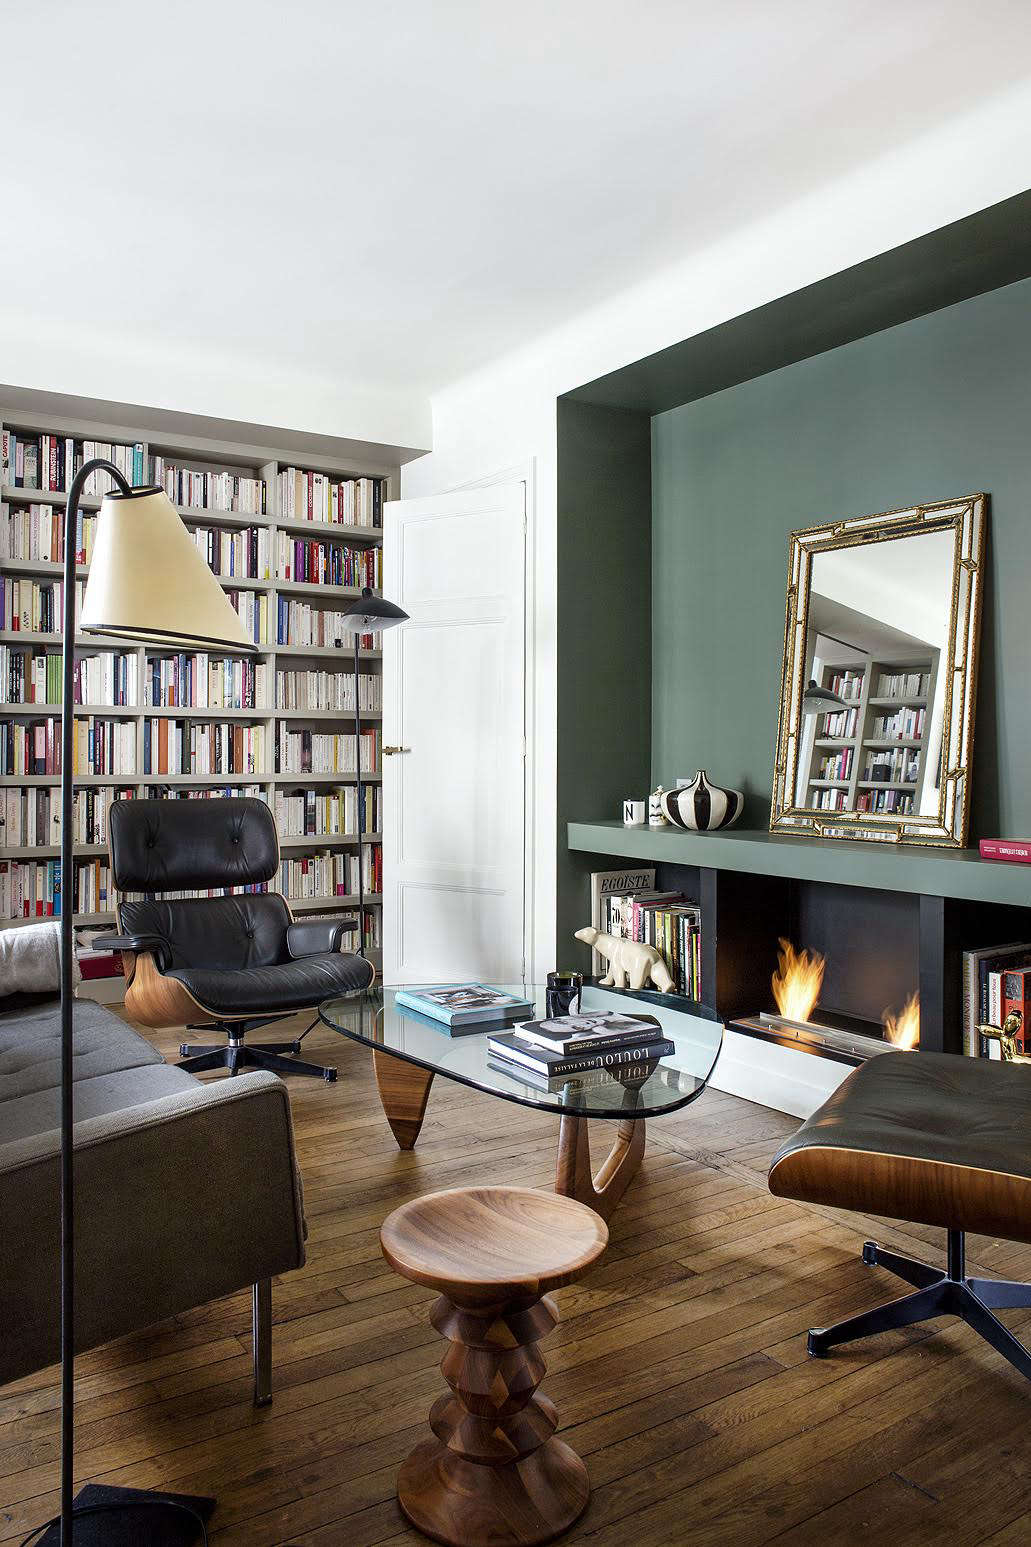 ideas for small apartment living room design a bare wall 9 space to steal from tiny paris choose versatile furniture pieces the furnishings owner requested modernist icons including noguchi coffee table